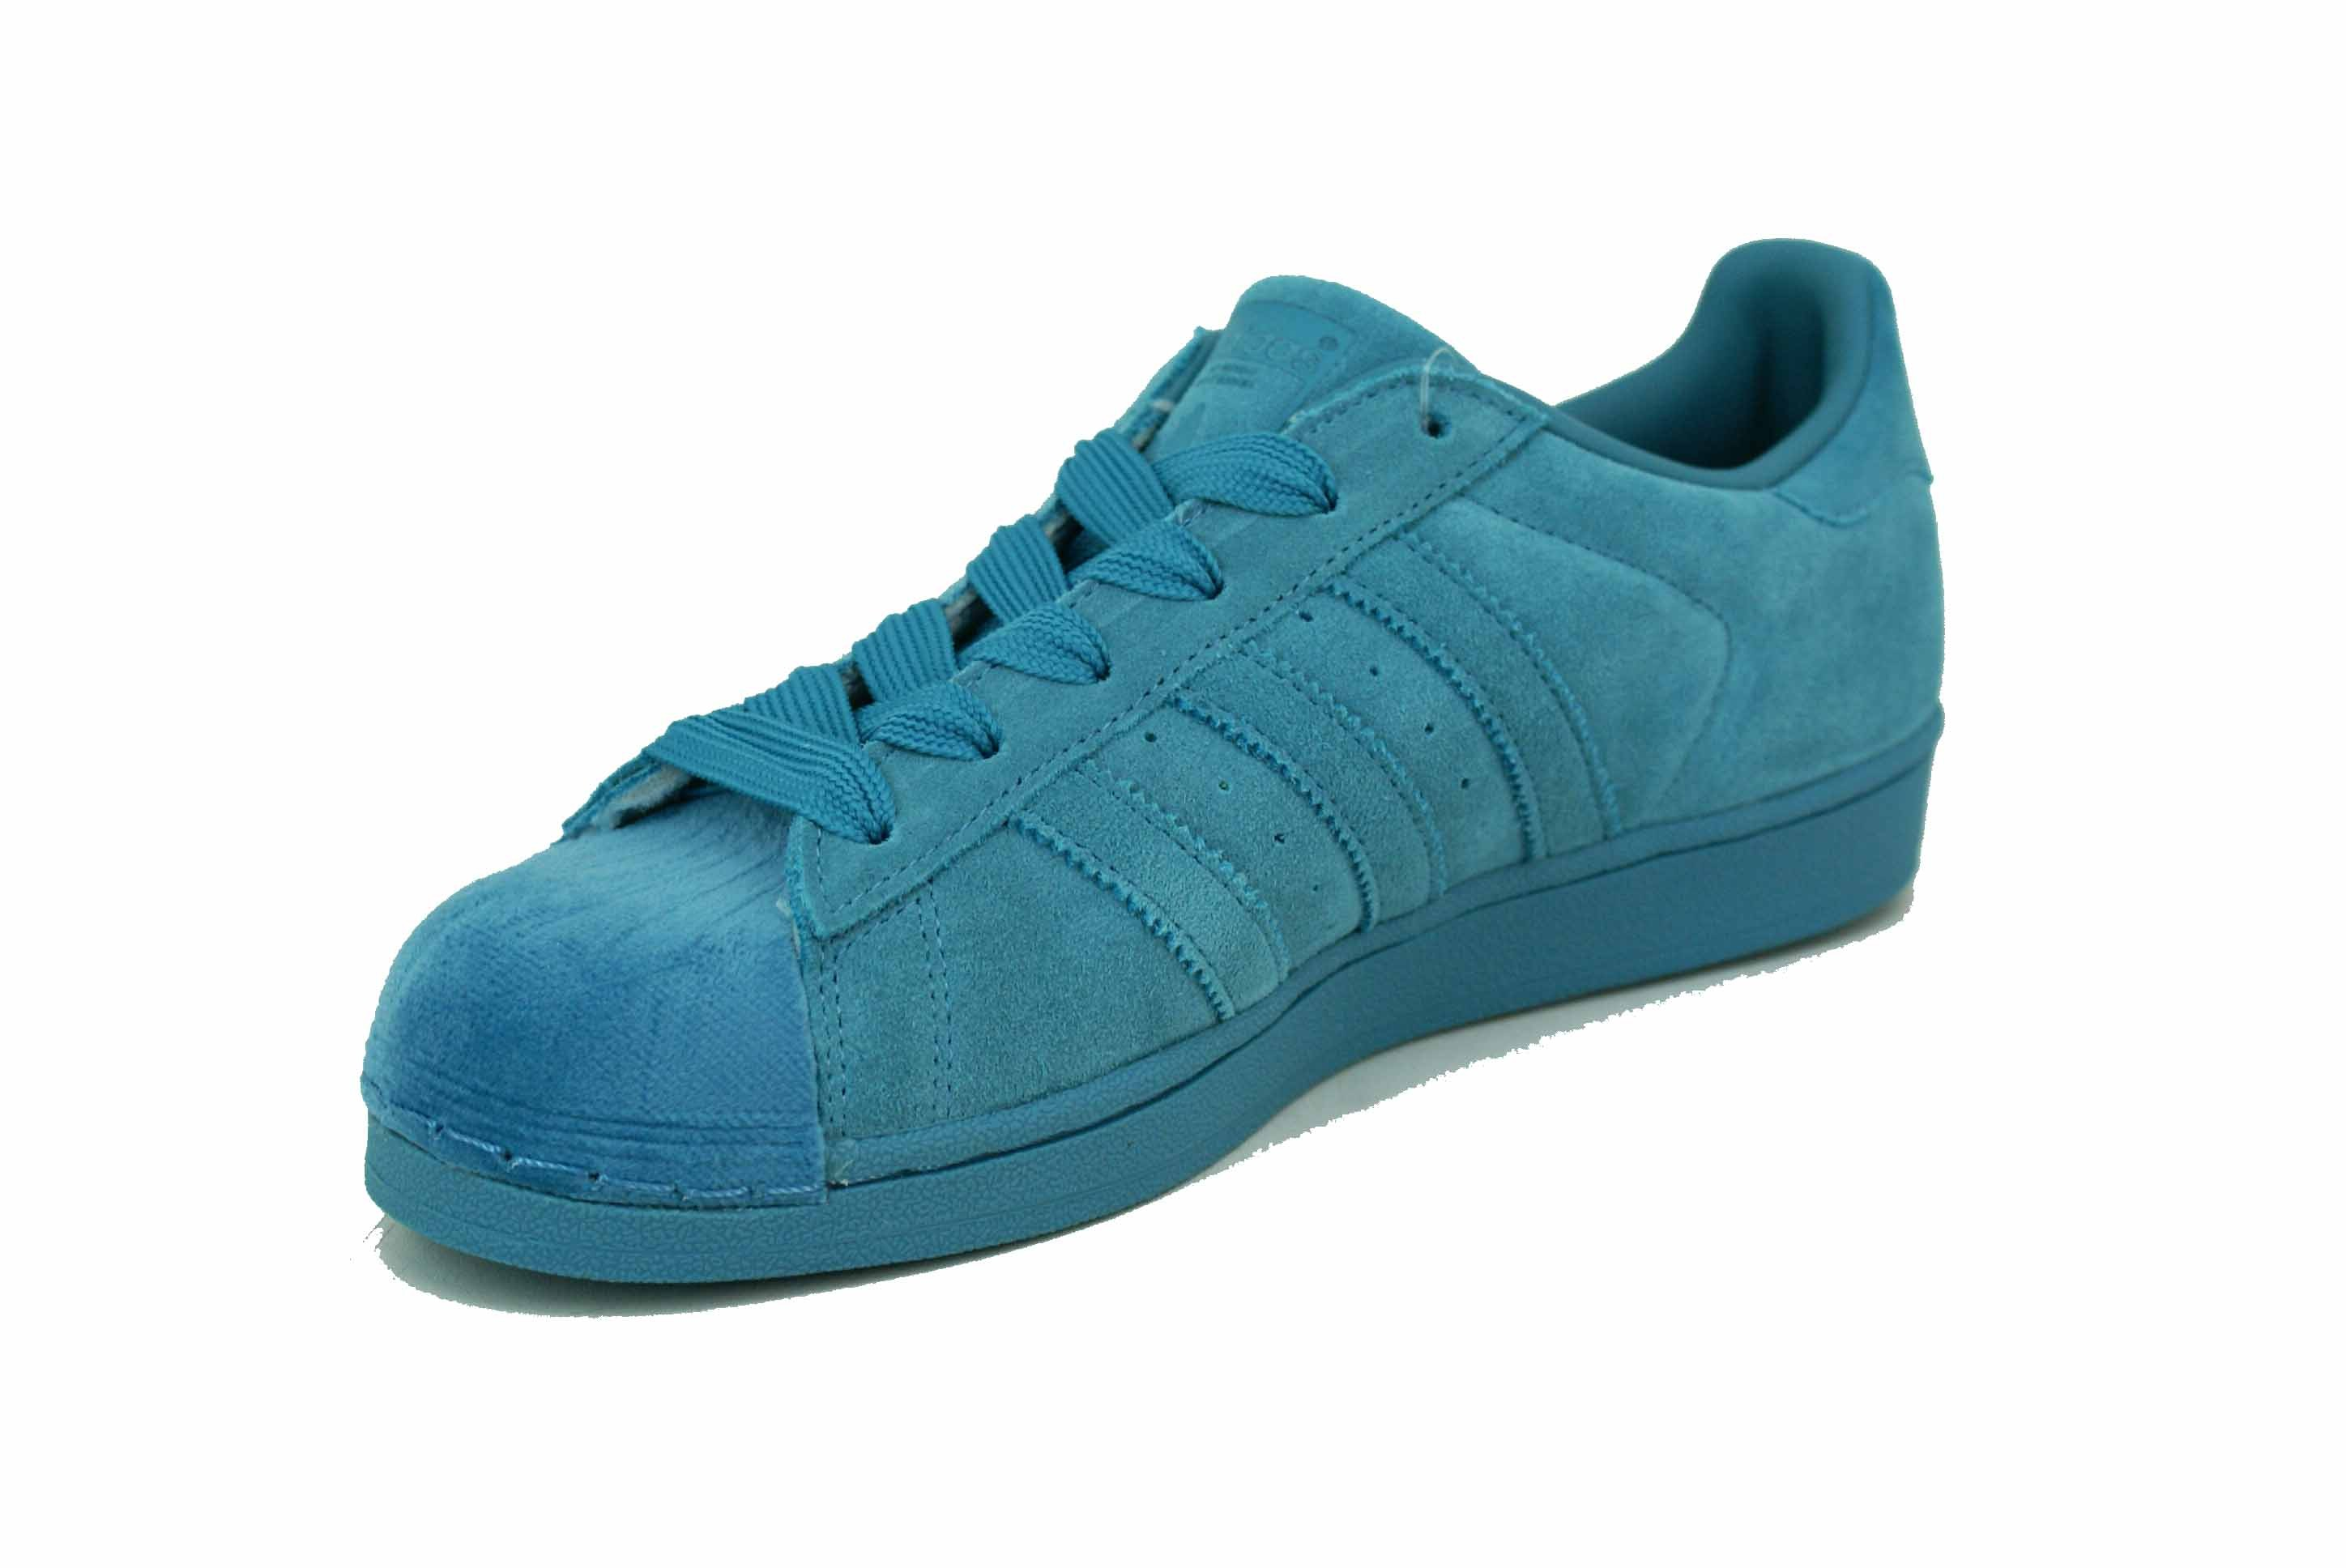 adidas superstar turquesa